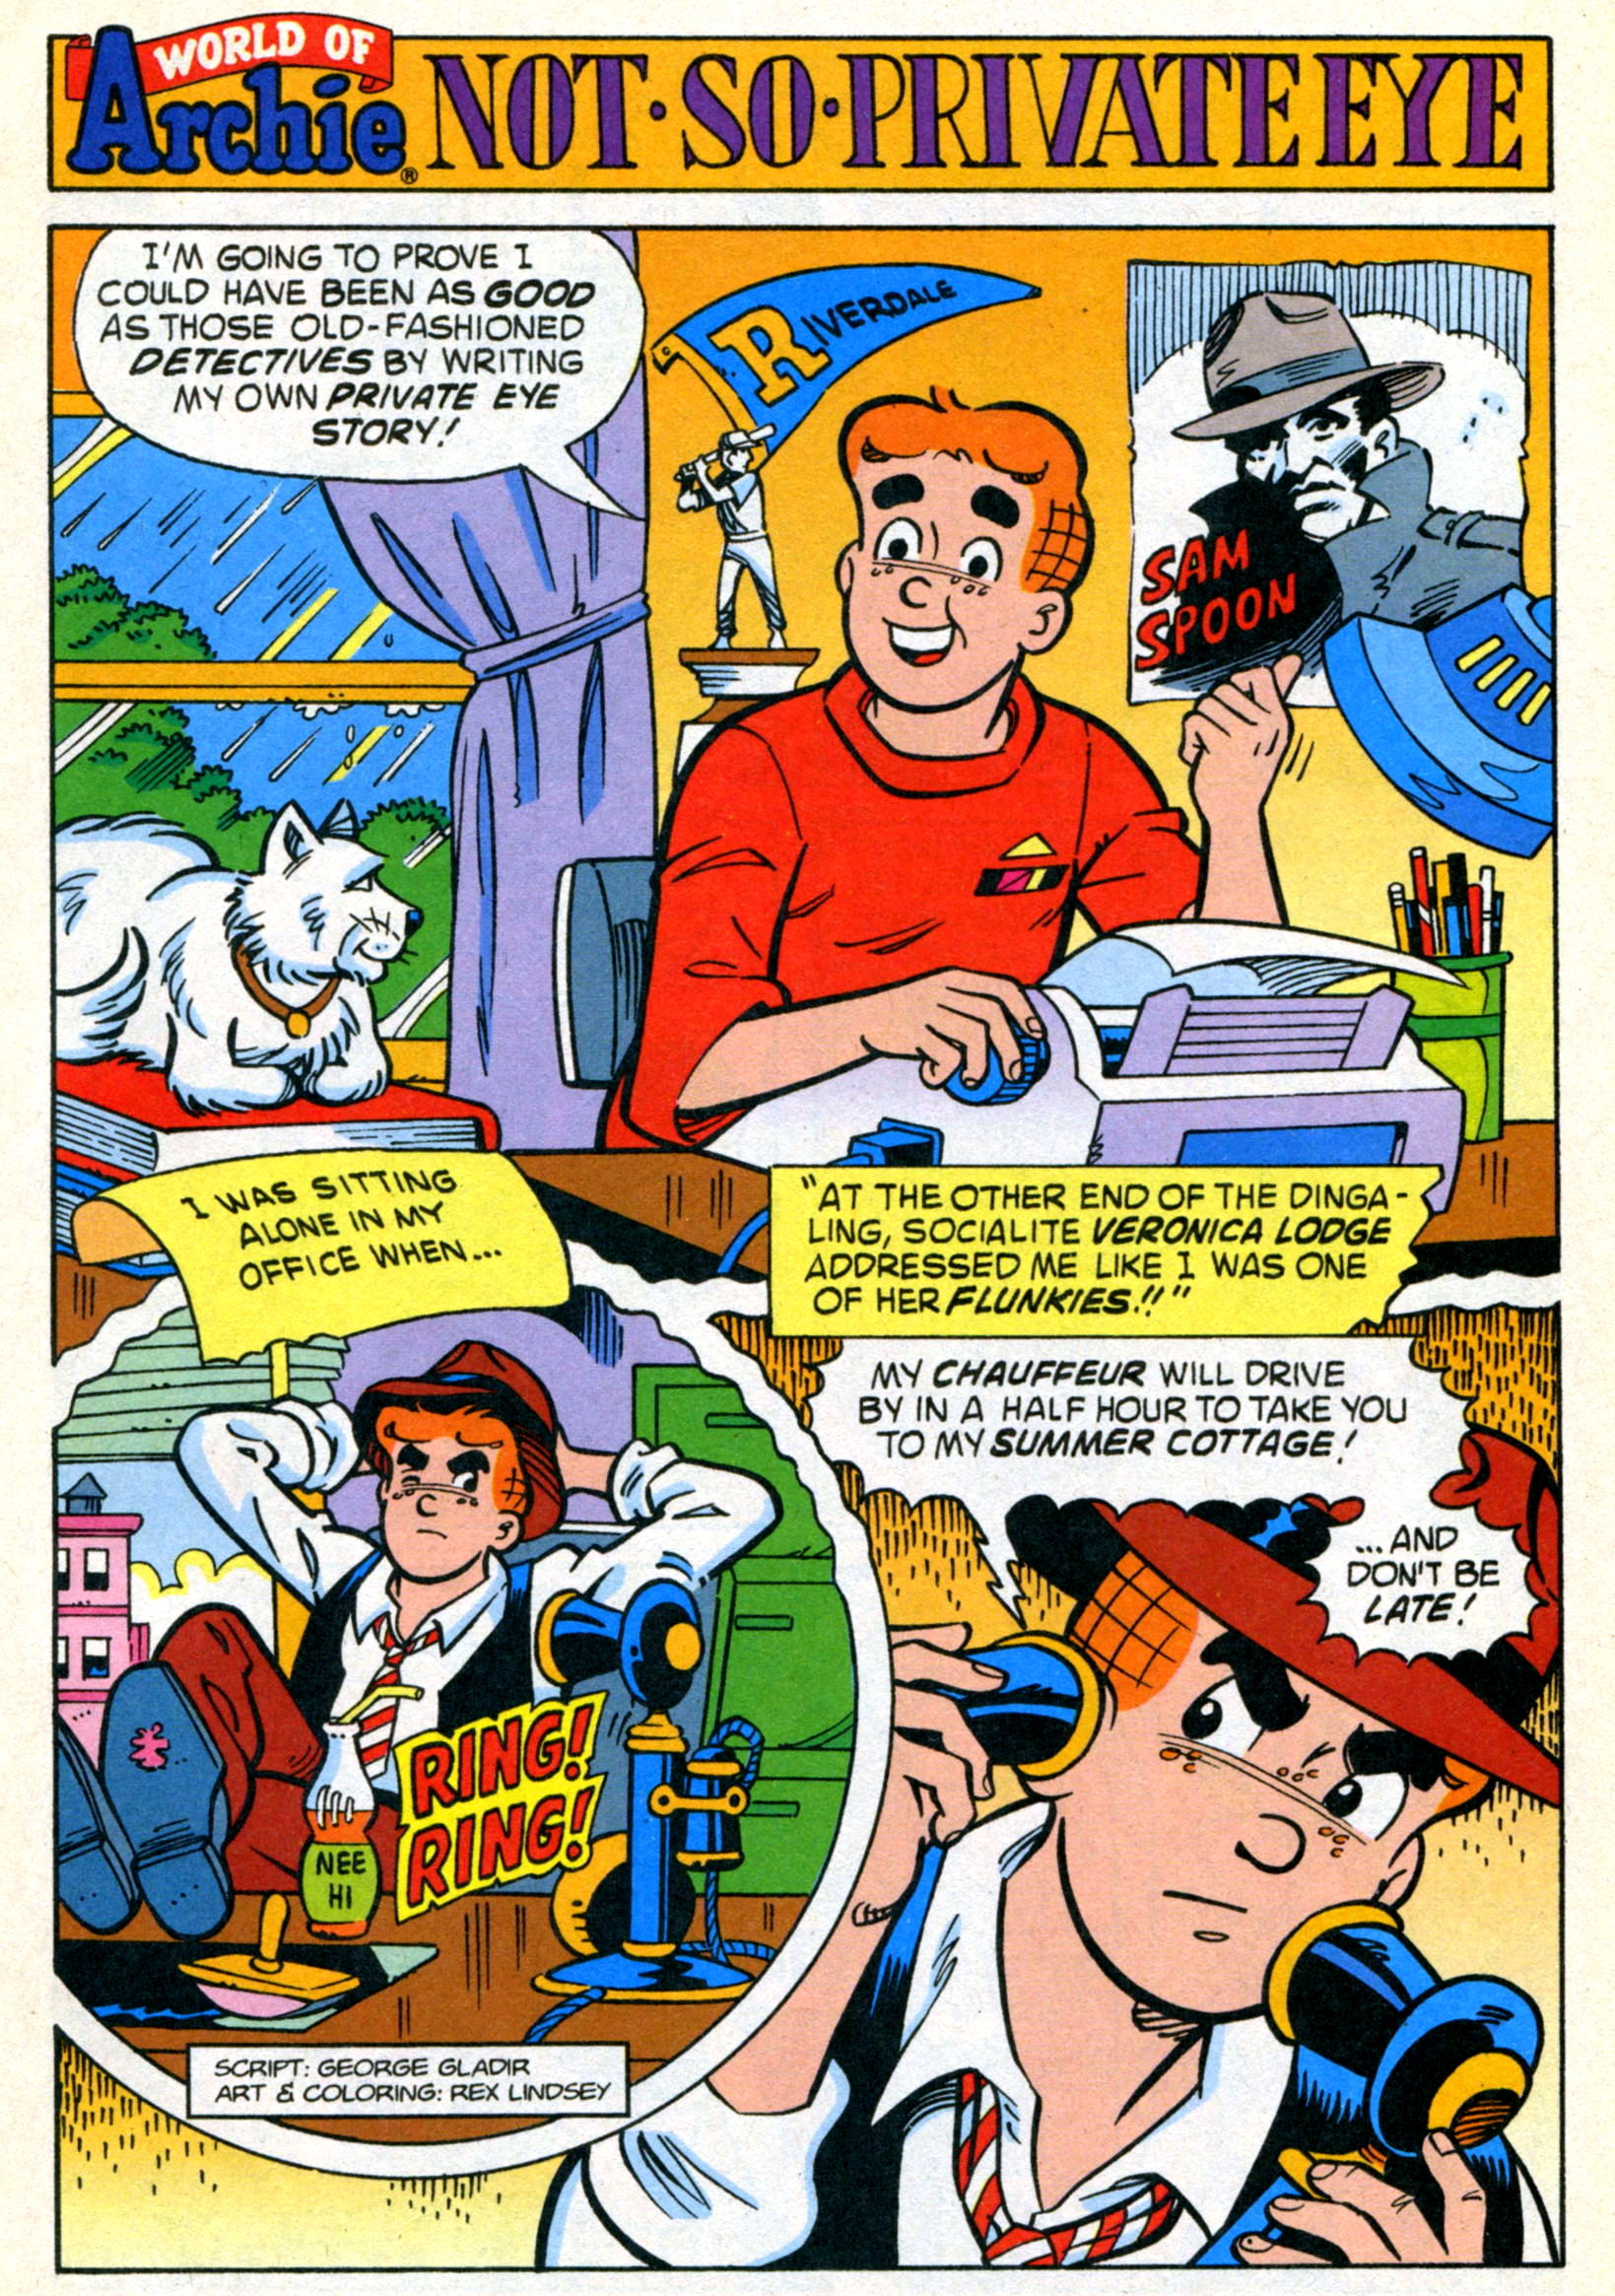 Read online World of Archie comic -  Issue #21 - 19